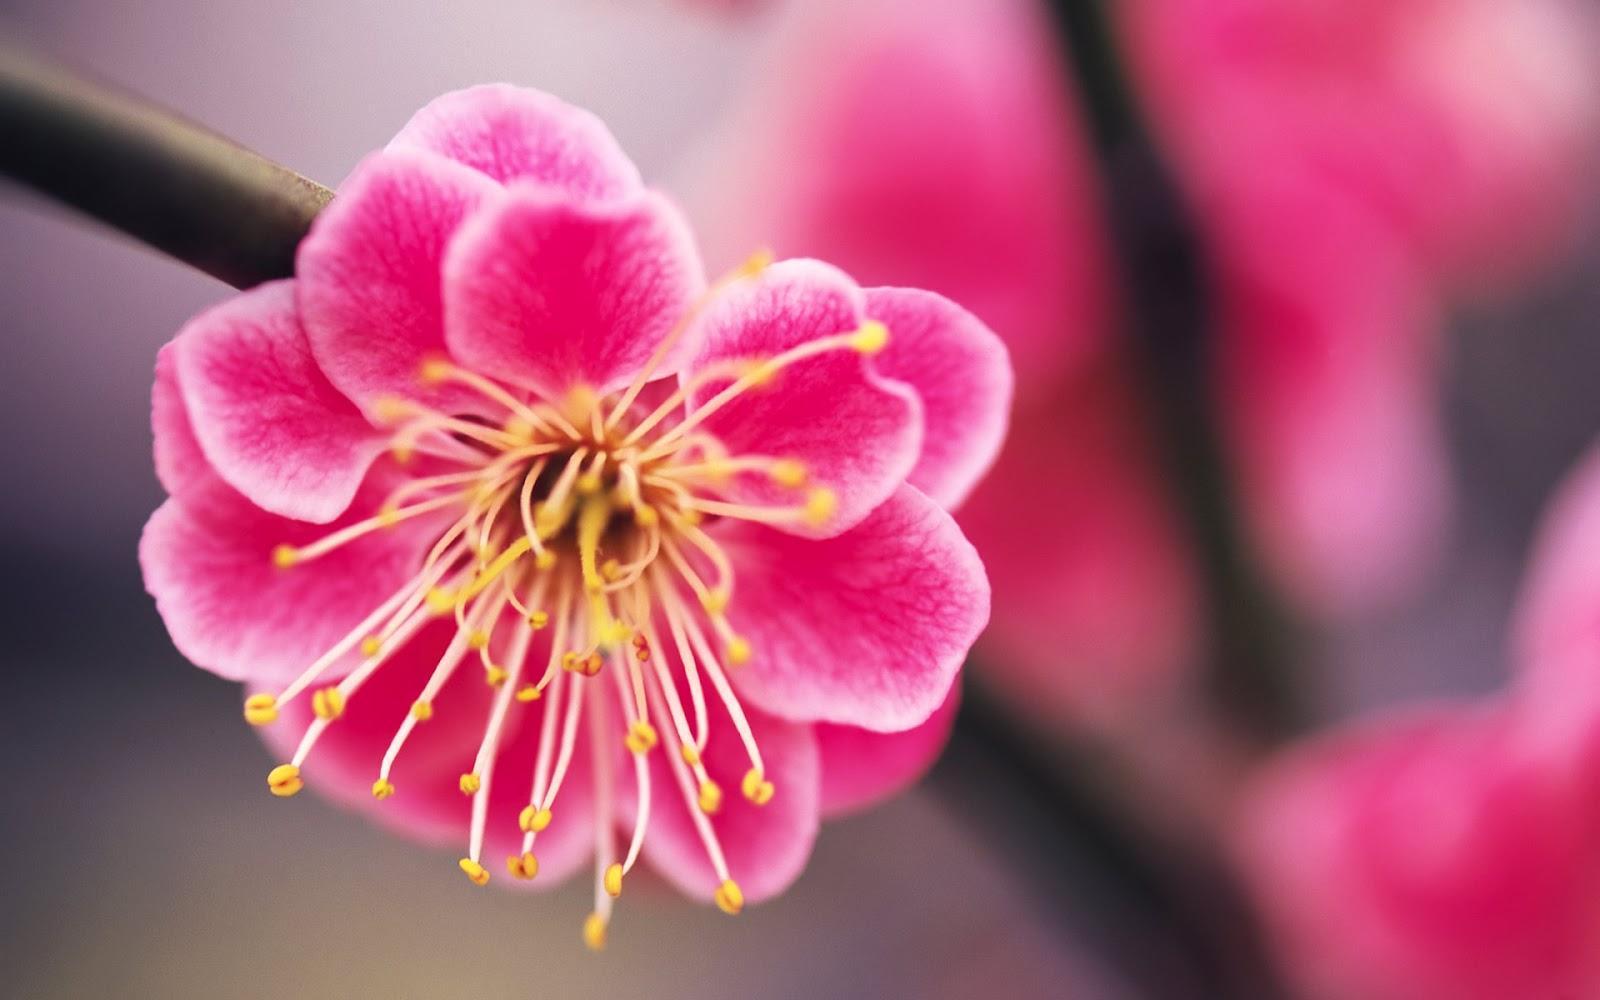 Beautiful flower pictures in the world izmirmasajfo Image collections